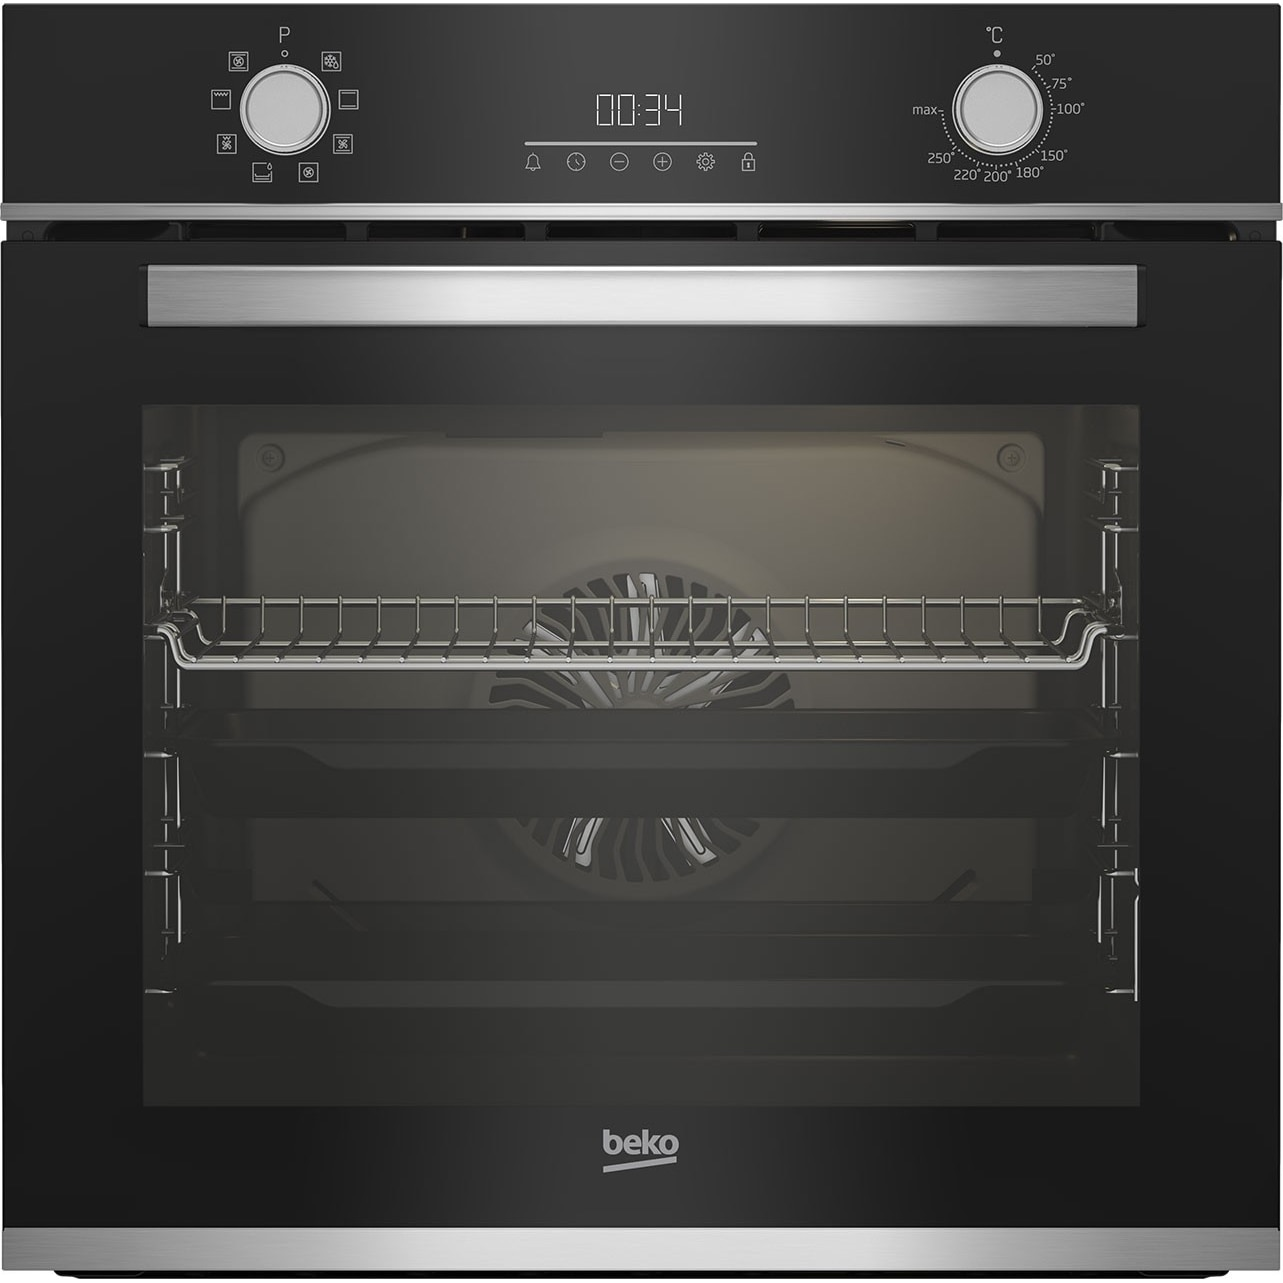 Fotografie Cuptor incorporabil Beko BBIM13300XM, Electric, 72 l, Autocuratare catalitica, Display touch control, SteamShine Cleaning, Grill, 3D Cooking, Clasa A, Sticla neagra